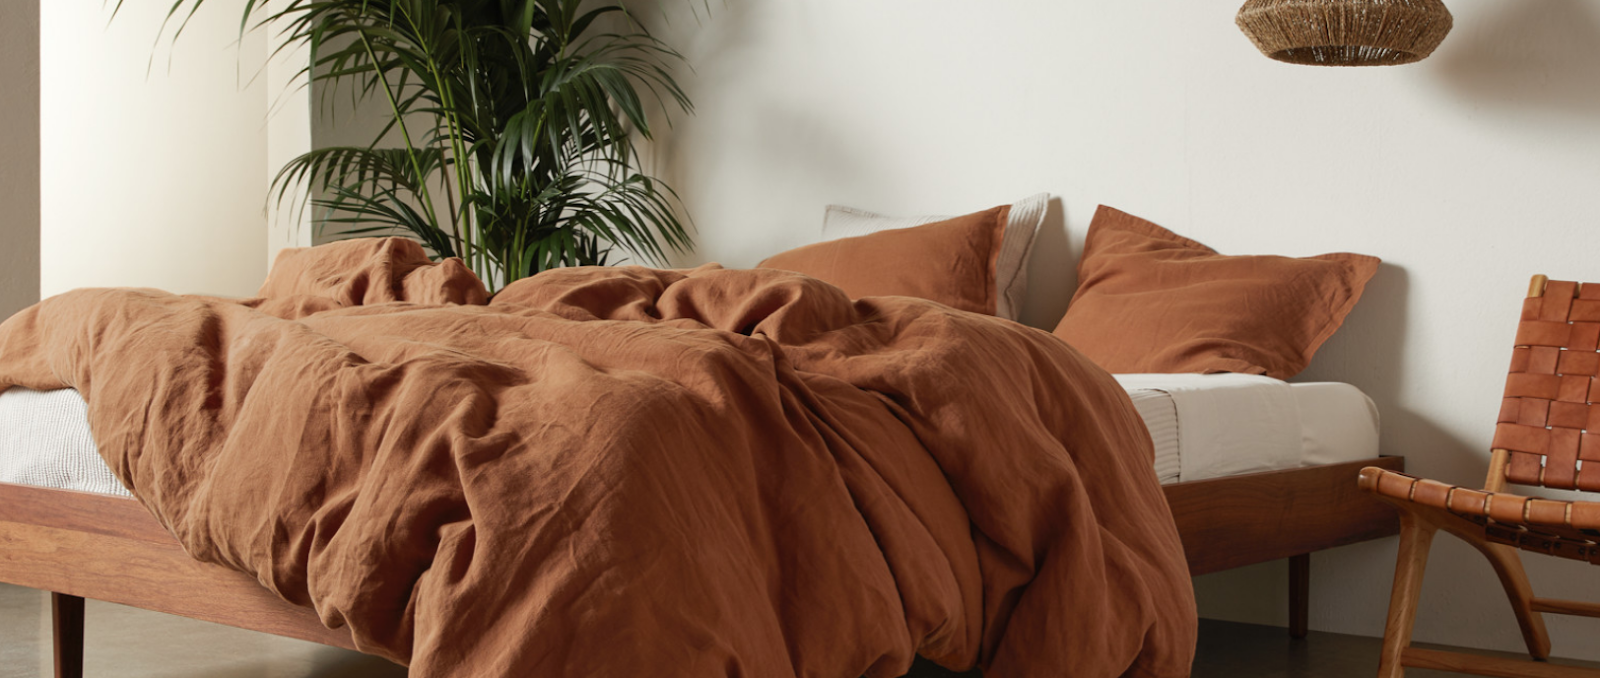 Parachute vs Brooklinen Bedding Review 69